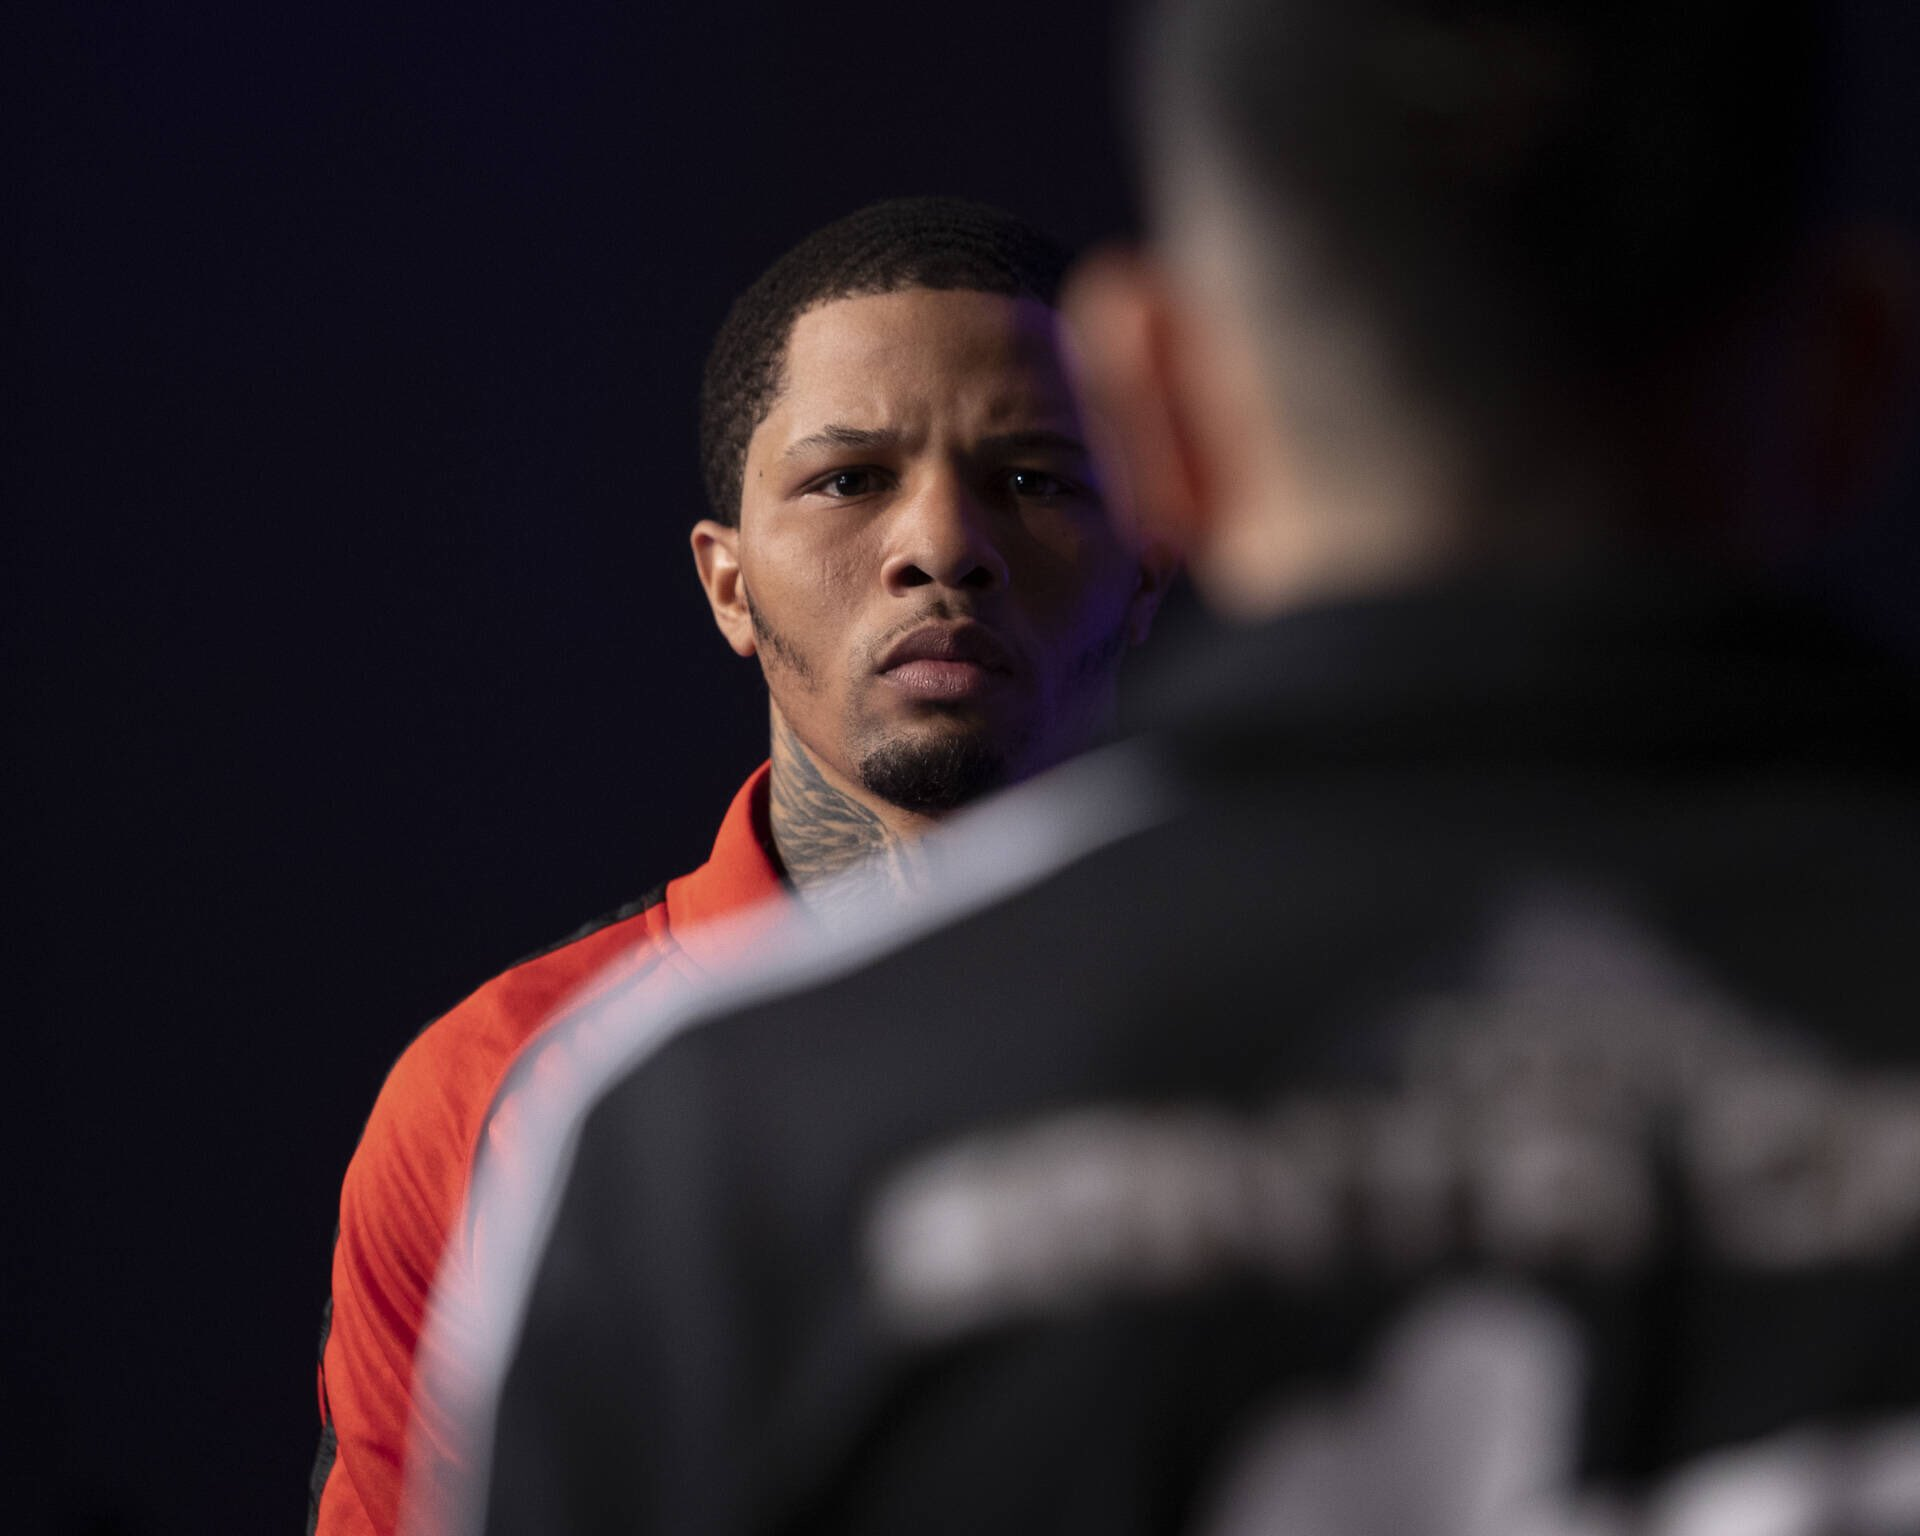 """Gervonta Davis Eager To Silence Critics: """"I Just Want To Redeem Myself, Show Them That I'm Number One In The Sport"""""""